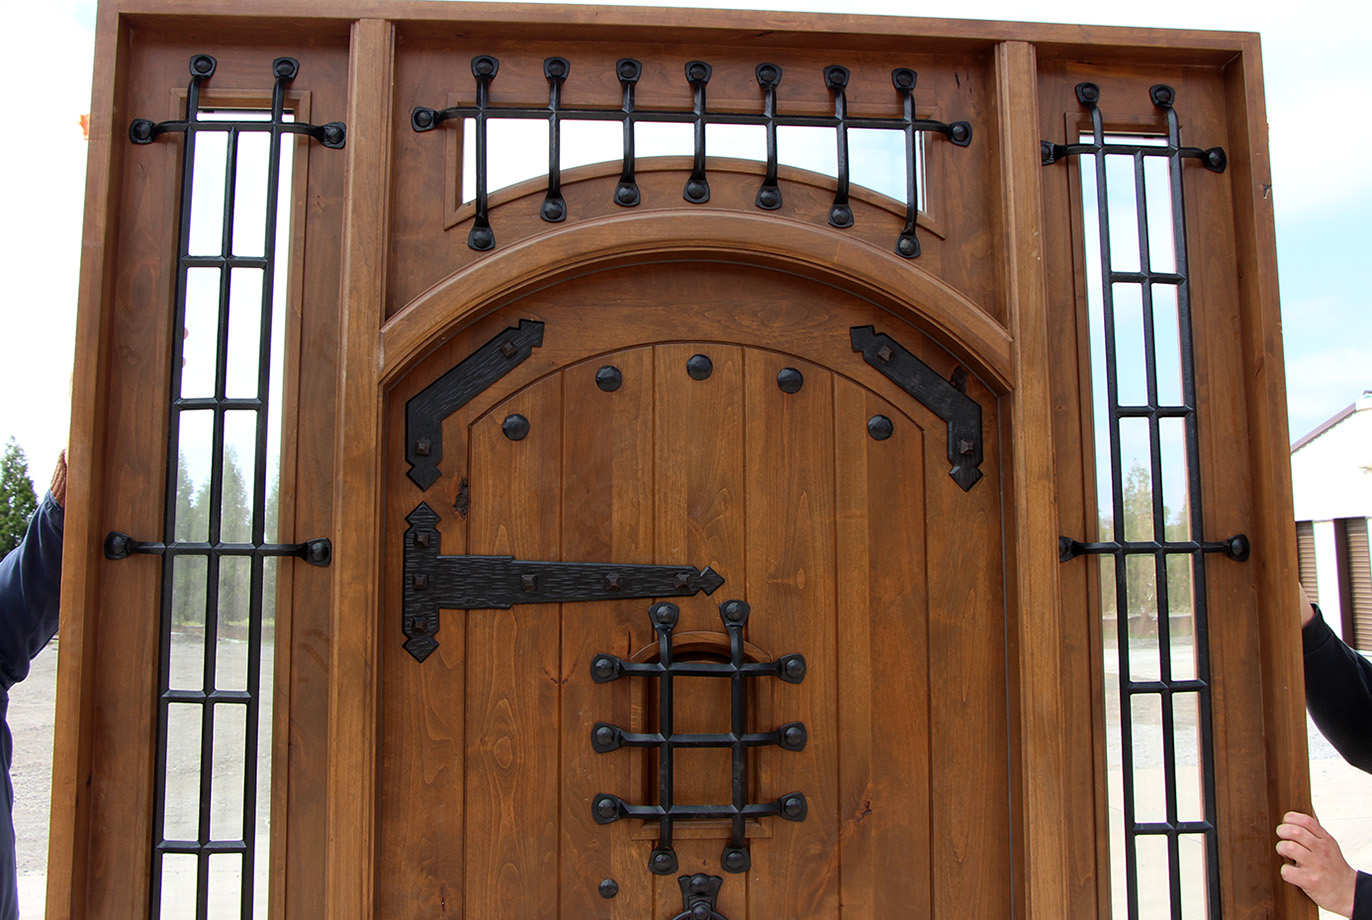 920 #714528 Rustic Castle Door With Sidelights And Transom save image Exterior Doors Discount 45271372